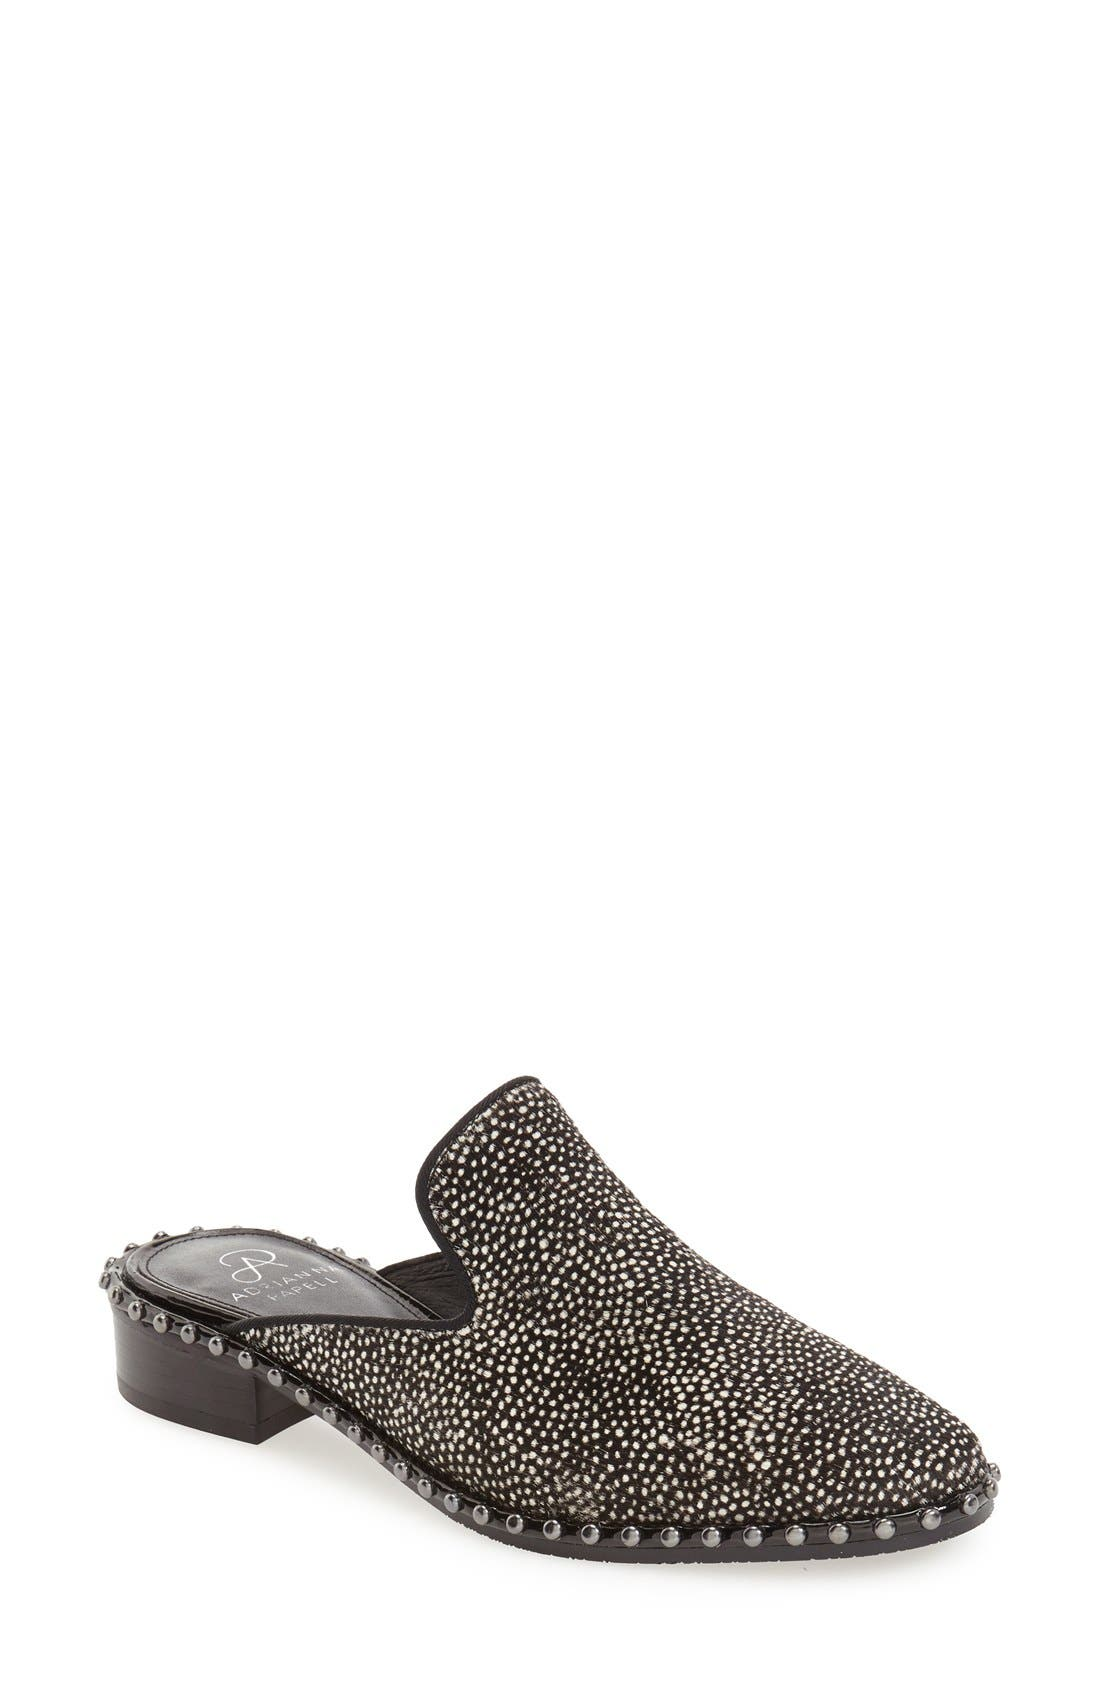 Alternate Image 1 Selected - Adrianna Papell 'Pam' Studded Mule (Women)